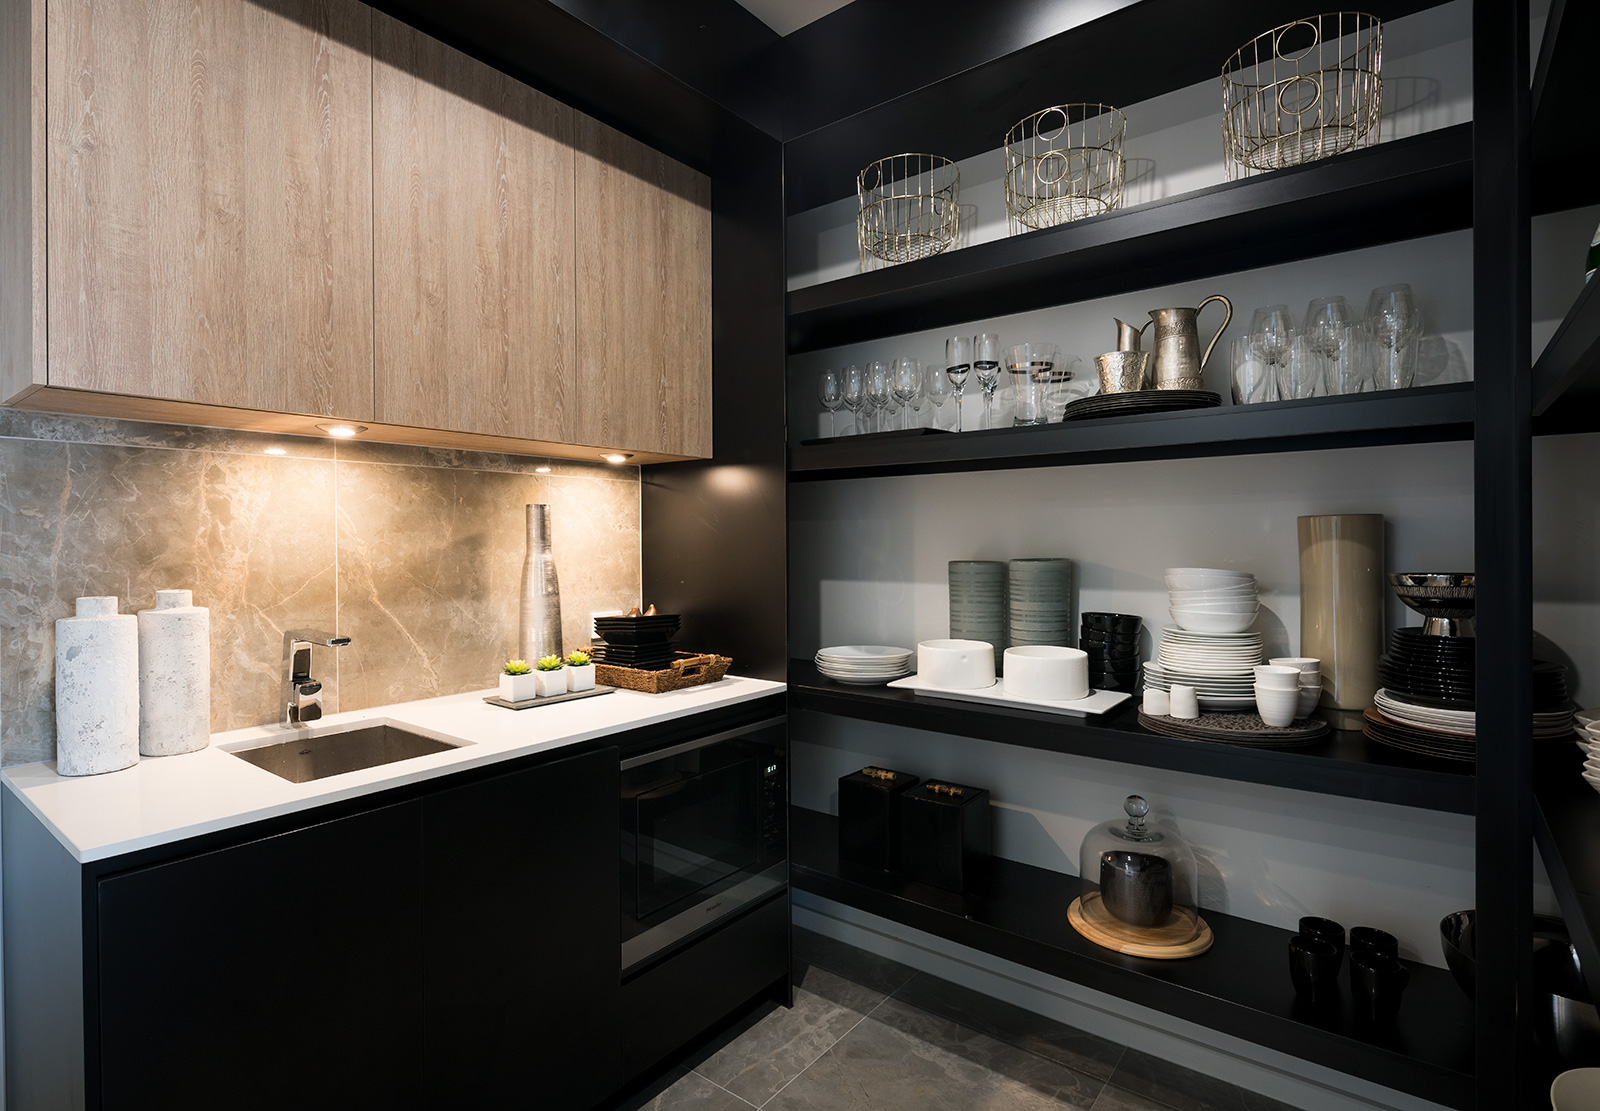 Top 4 Tips For Achieving The Ultimate Butlers Pantry